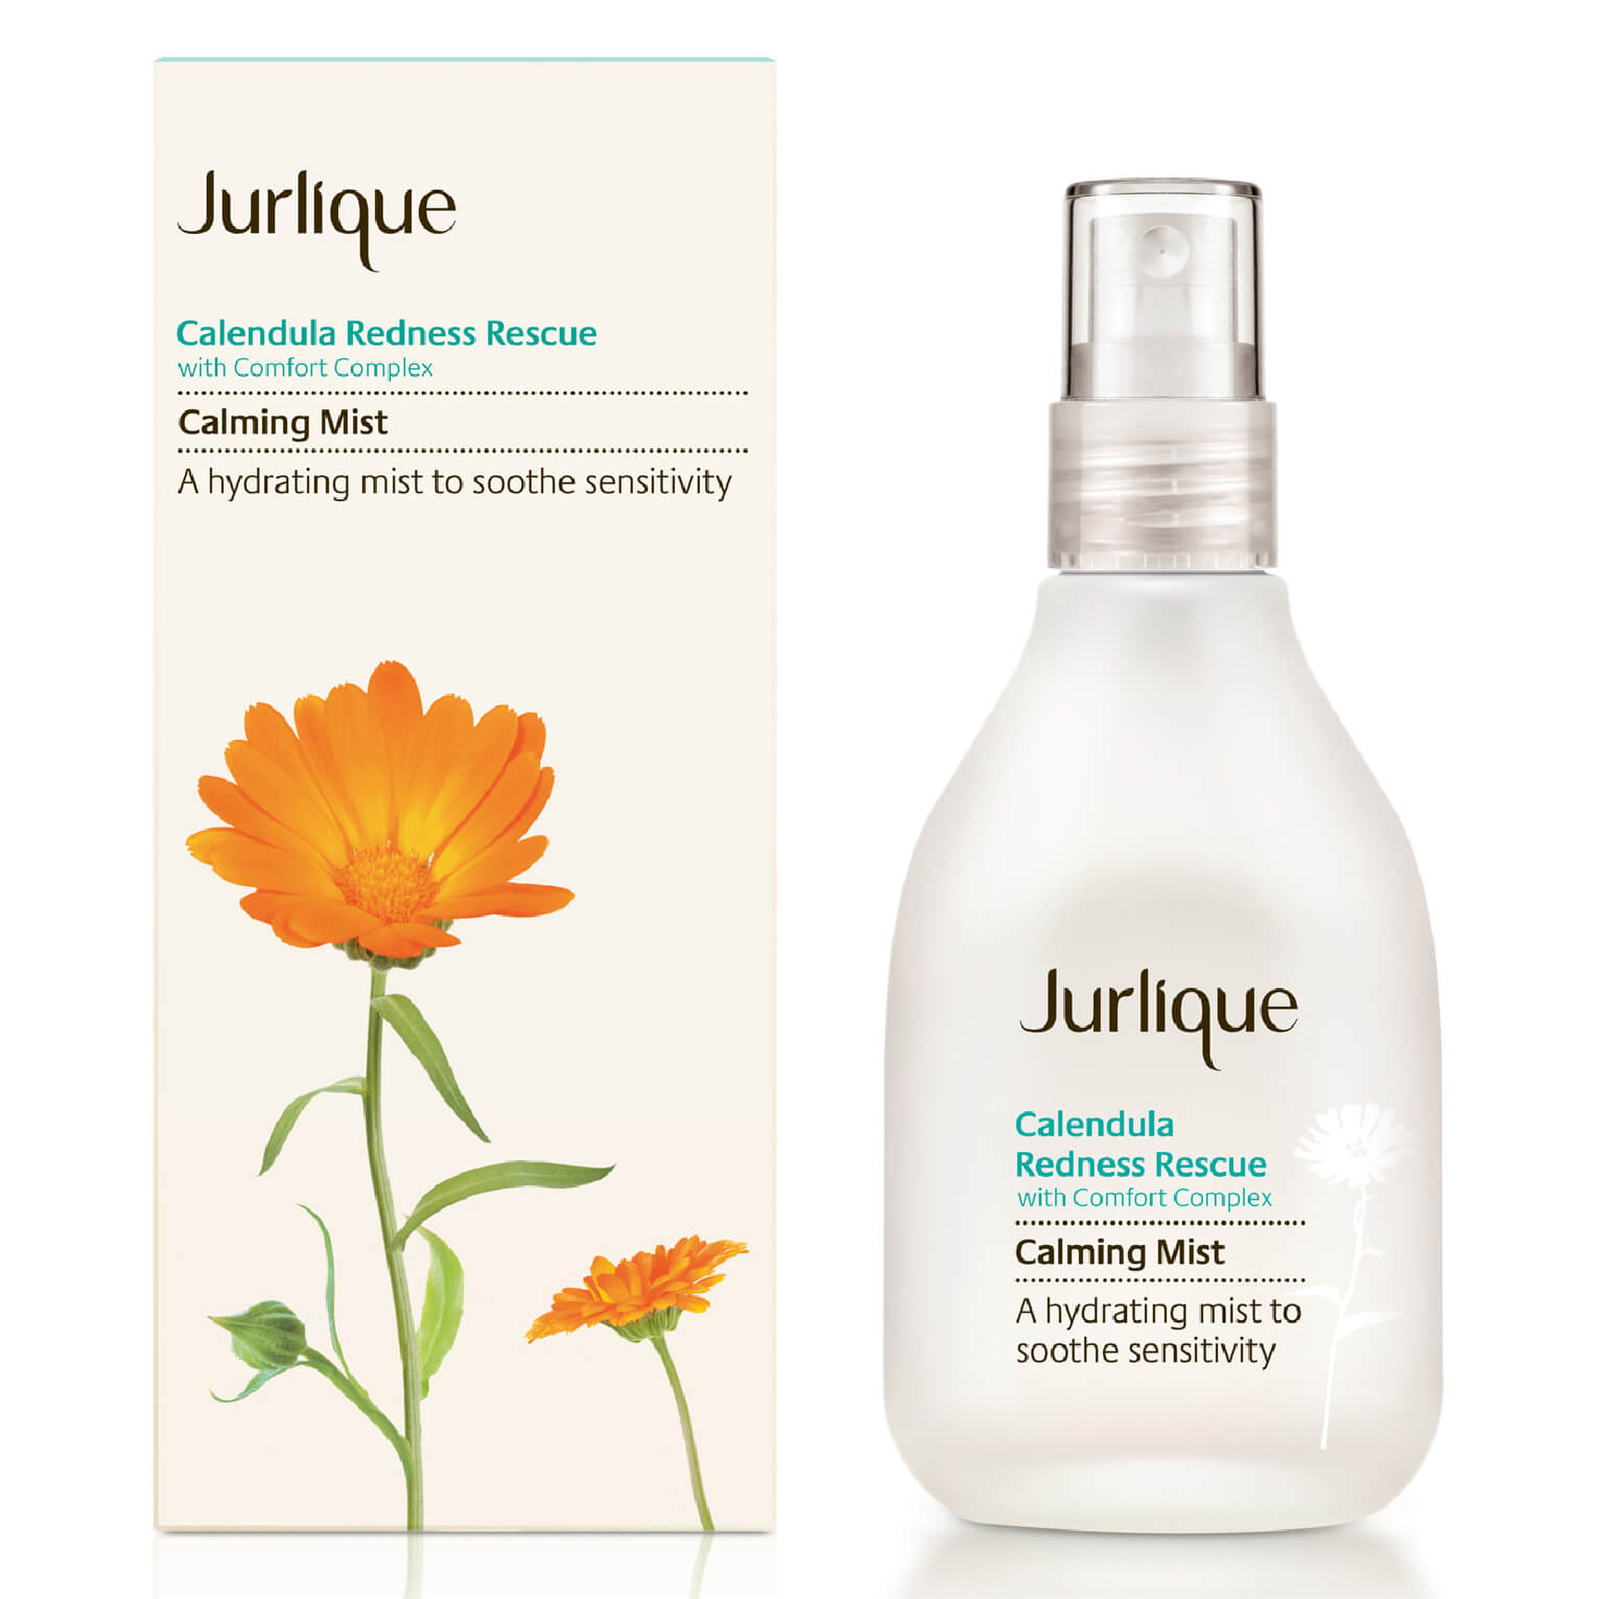 Jurlique Calendula Redness Rescue Calming Mist